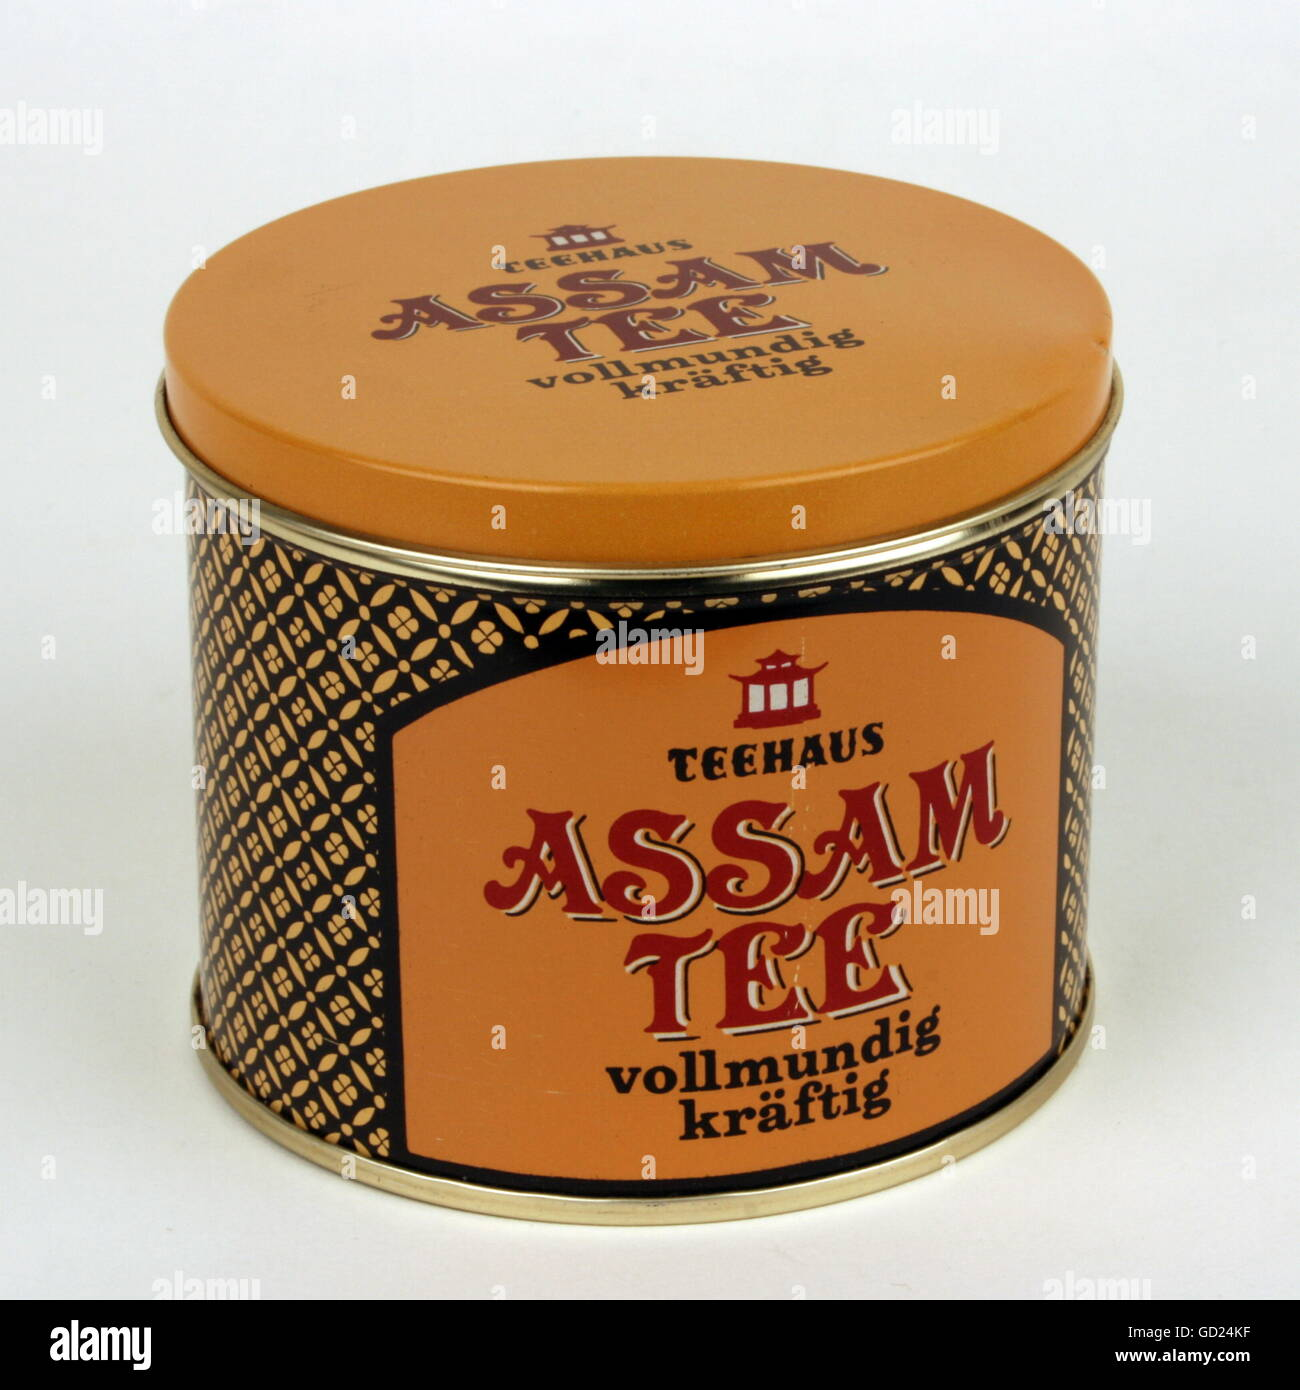 tea, tea sales box, tinplate Tea House Assam Tea, offset printing, made by VEB Kaffee und Tee Radebeul, East-Germany, - Stock Image